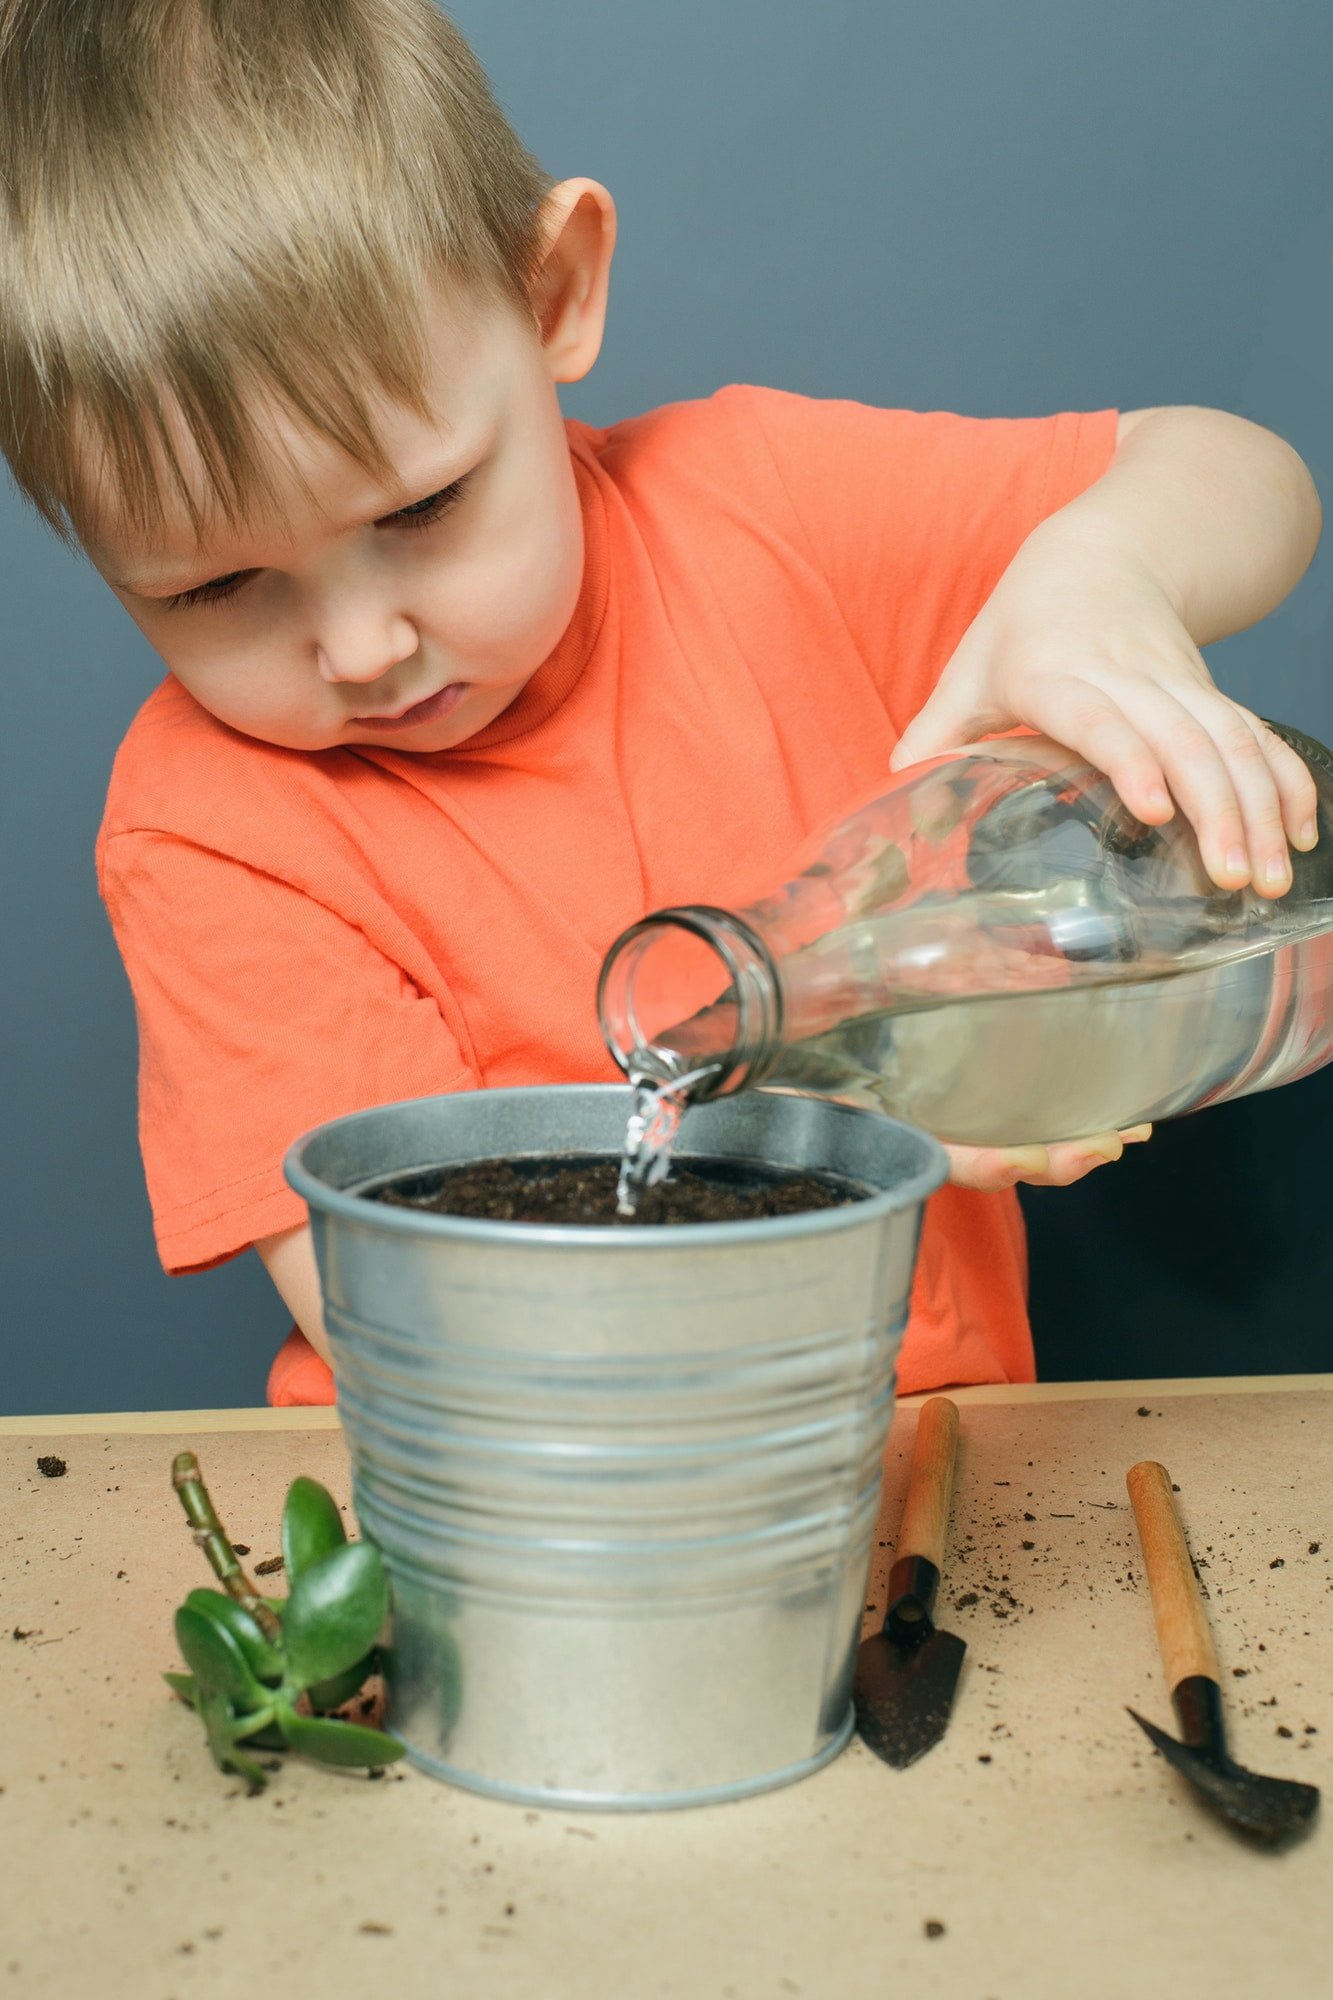 caucasian blond child boy watering ground for planting money tree plant in metal flower pot